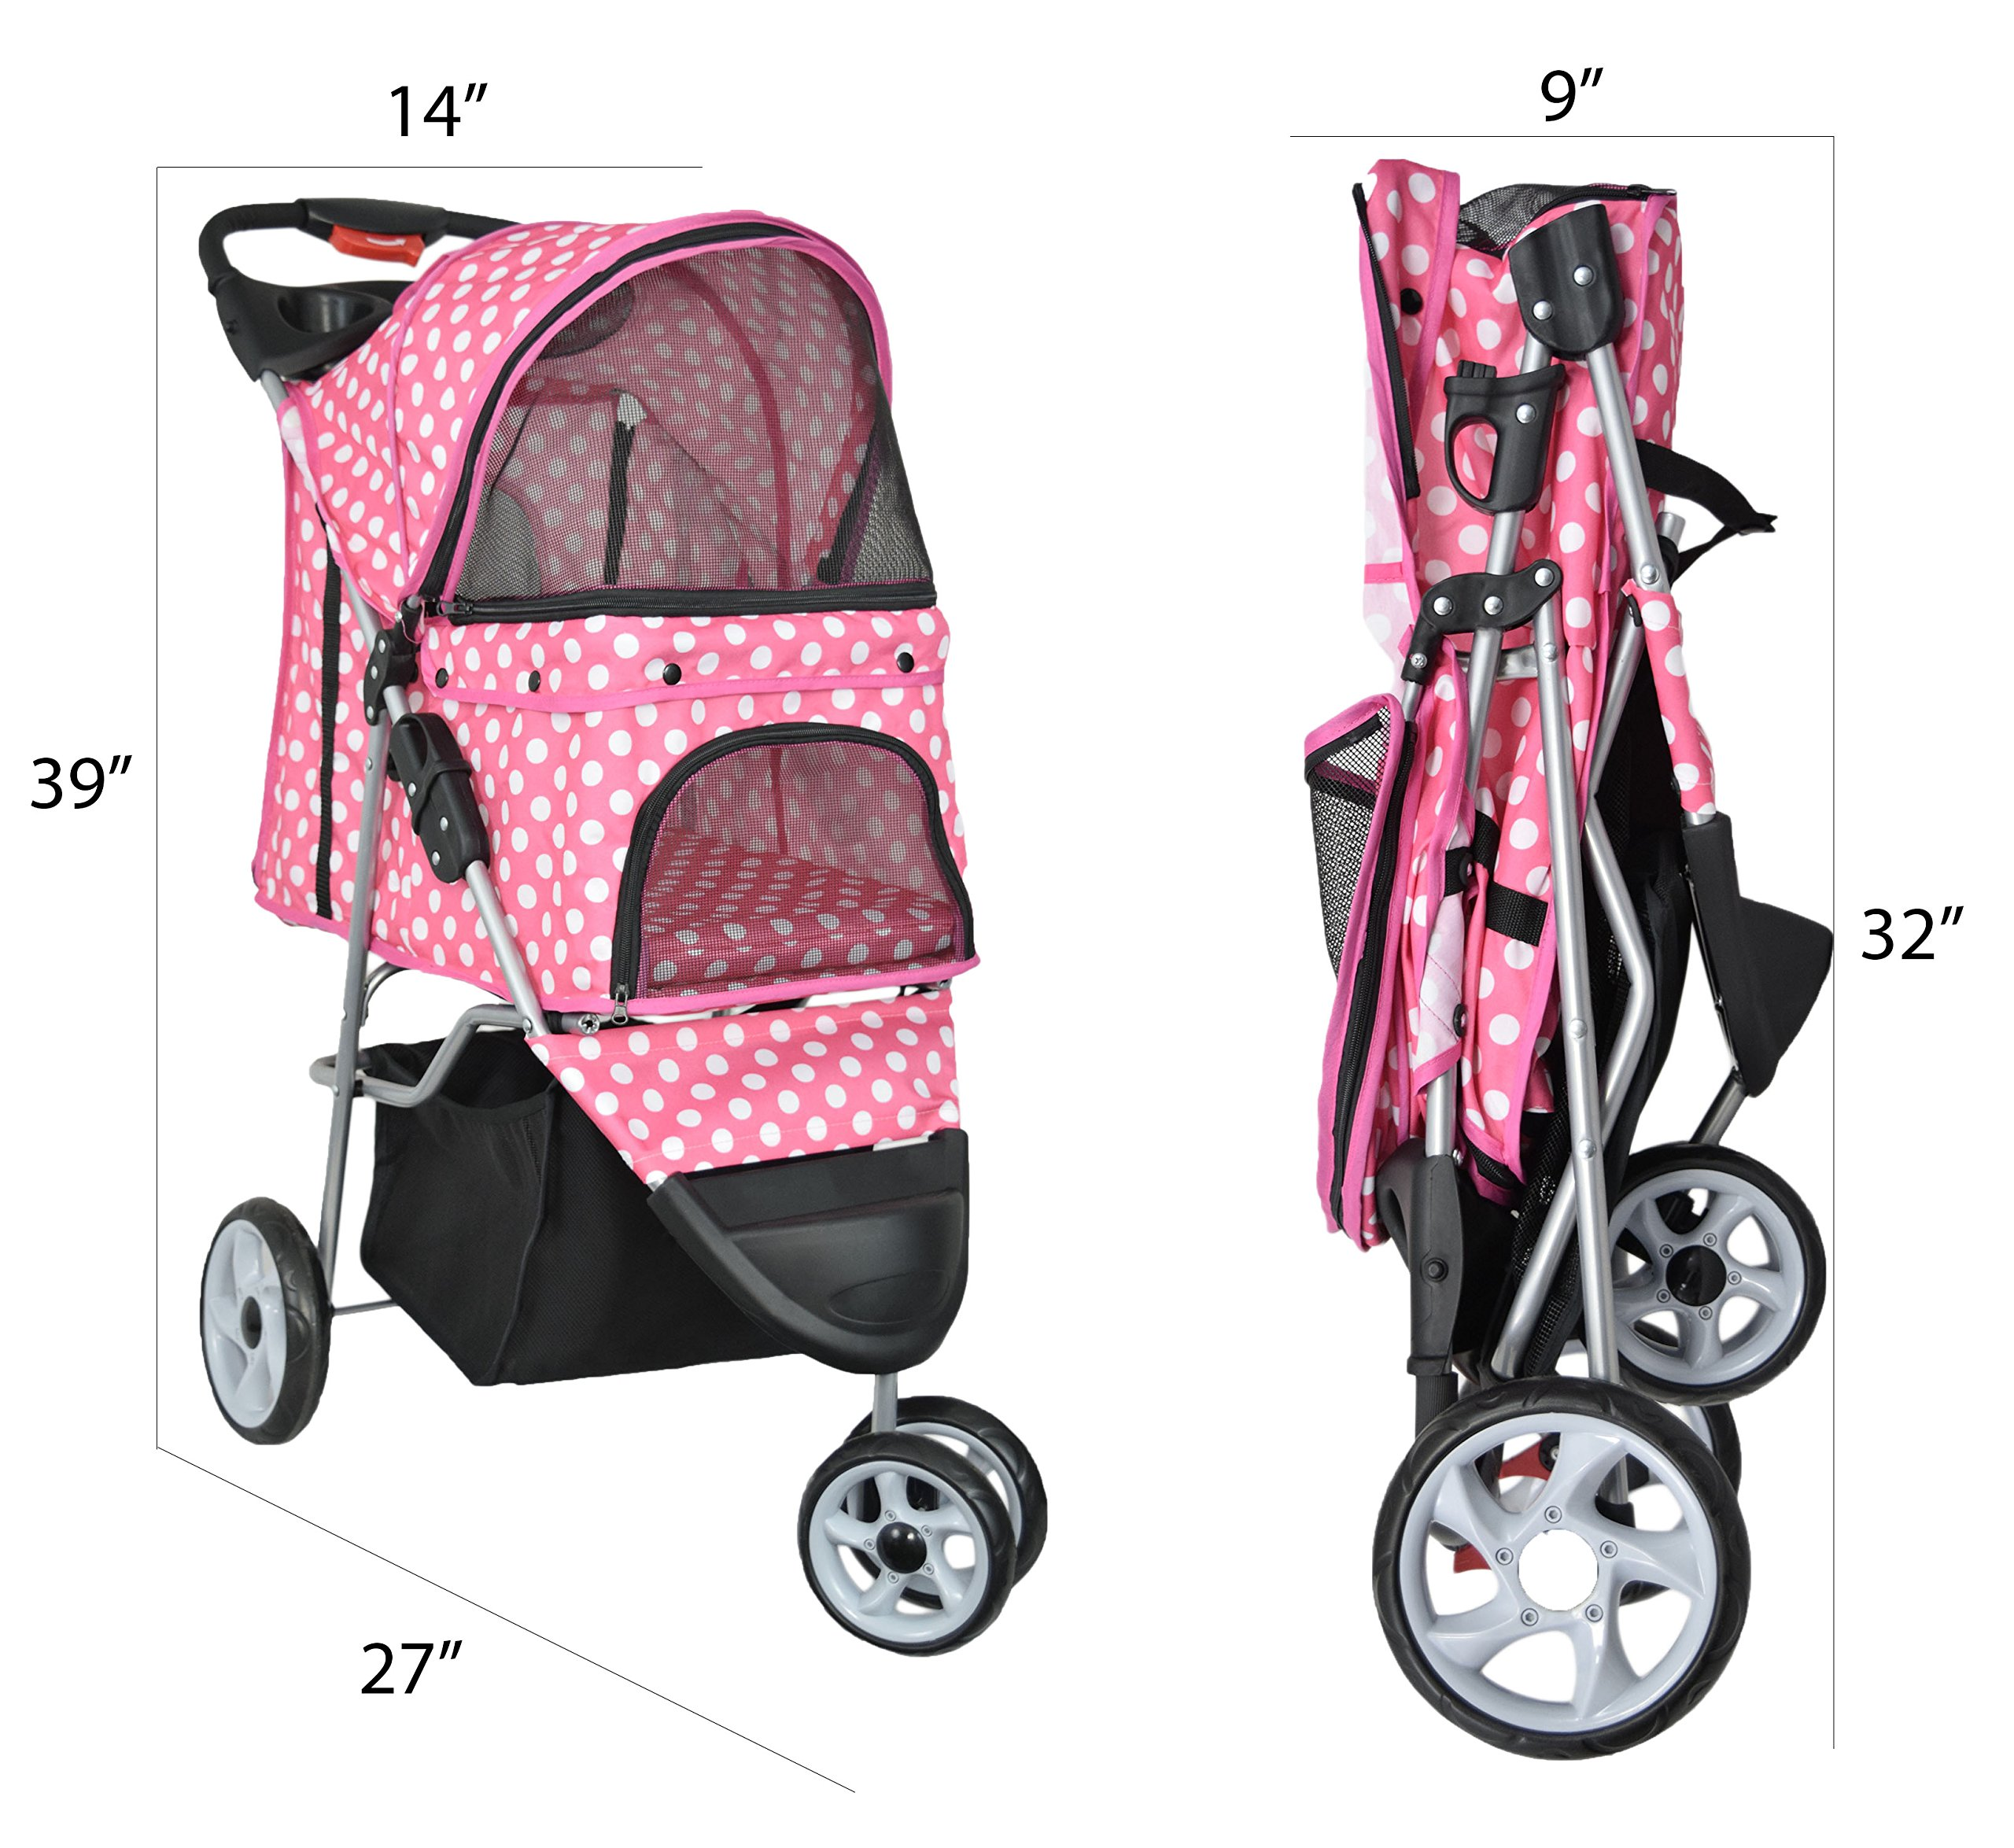 VIVO Three Wheel Pet Stroller, for Cat, Dog and More, Foldable Carrier Strolling Cart, Multiple Colors (Pink & White Polka Dot) by VIVO (Image #2)